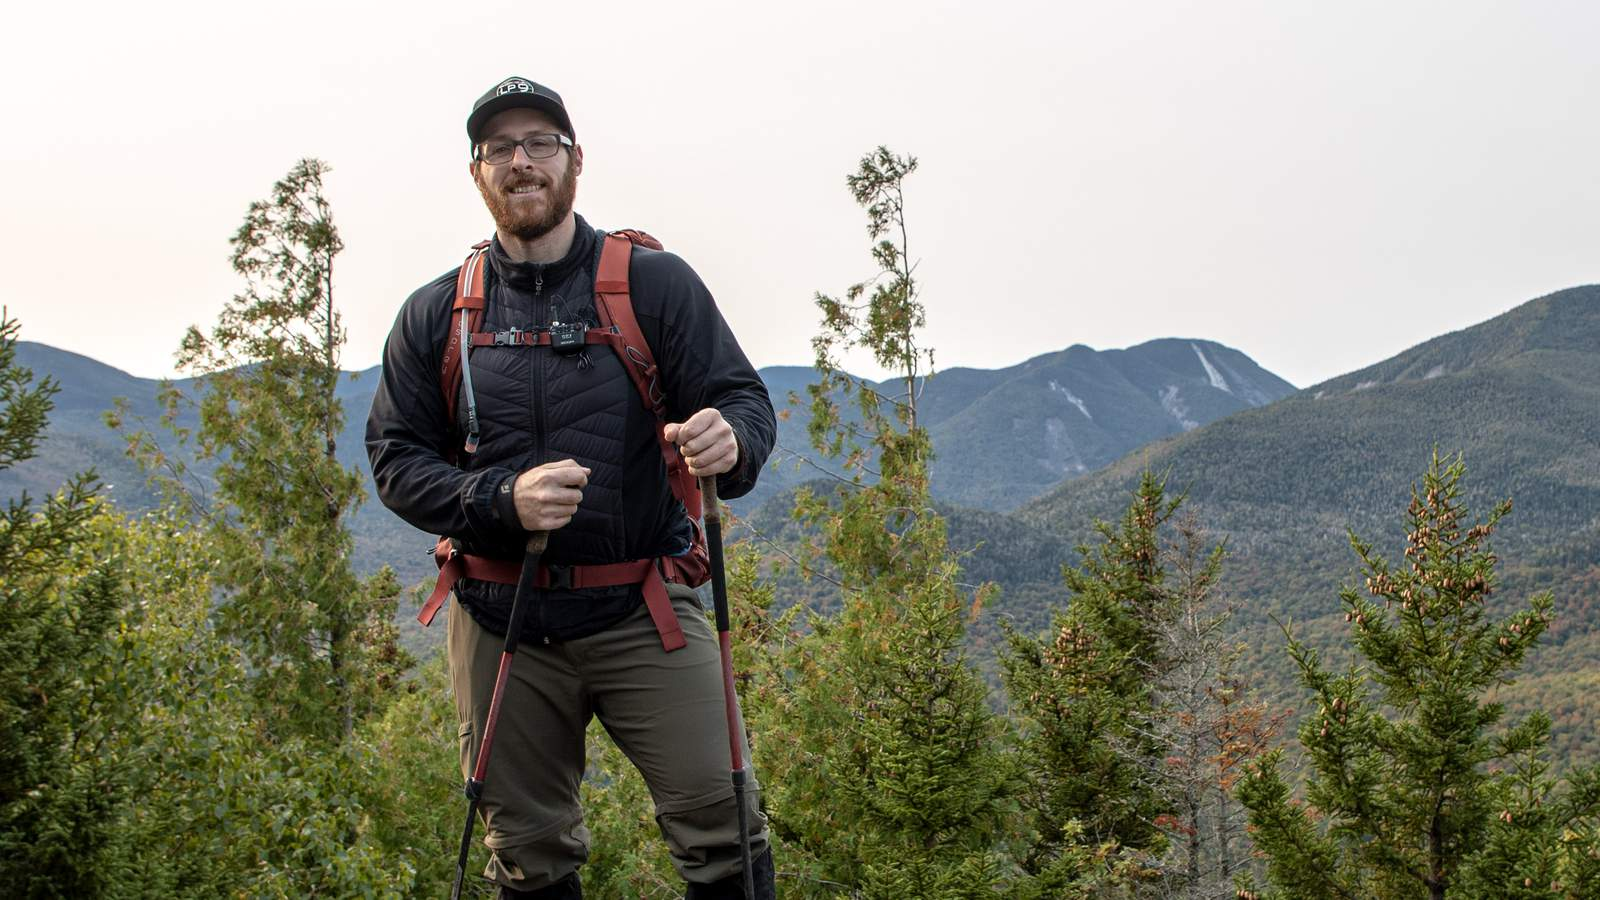 The F2-BT Field Recorder being worn on a hike